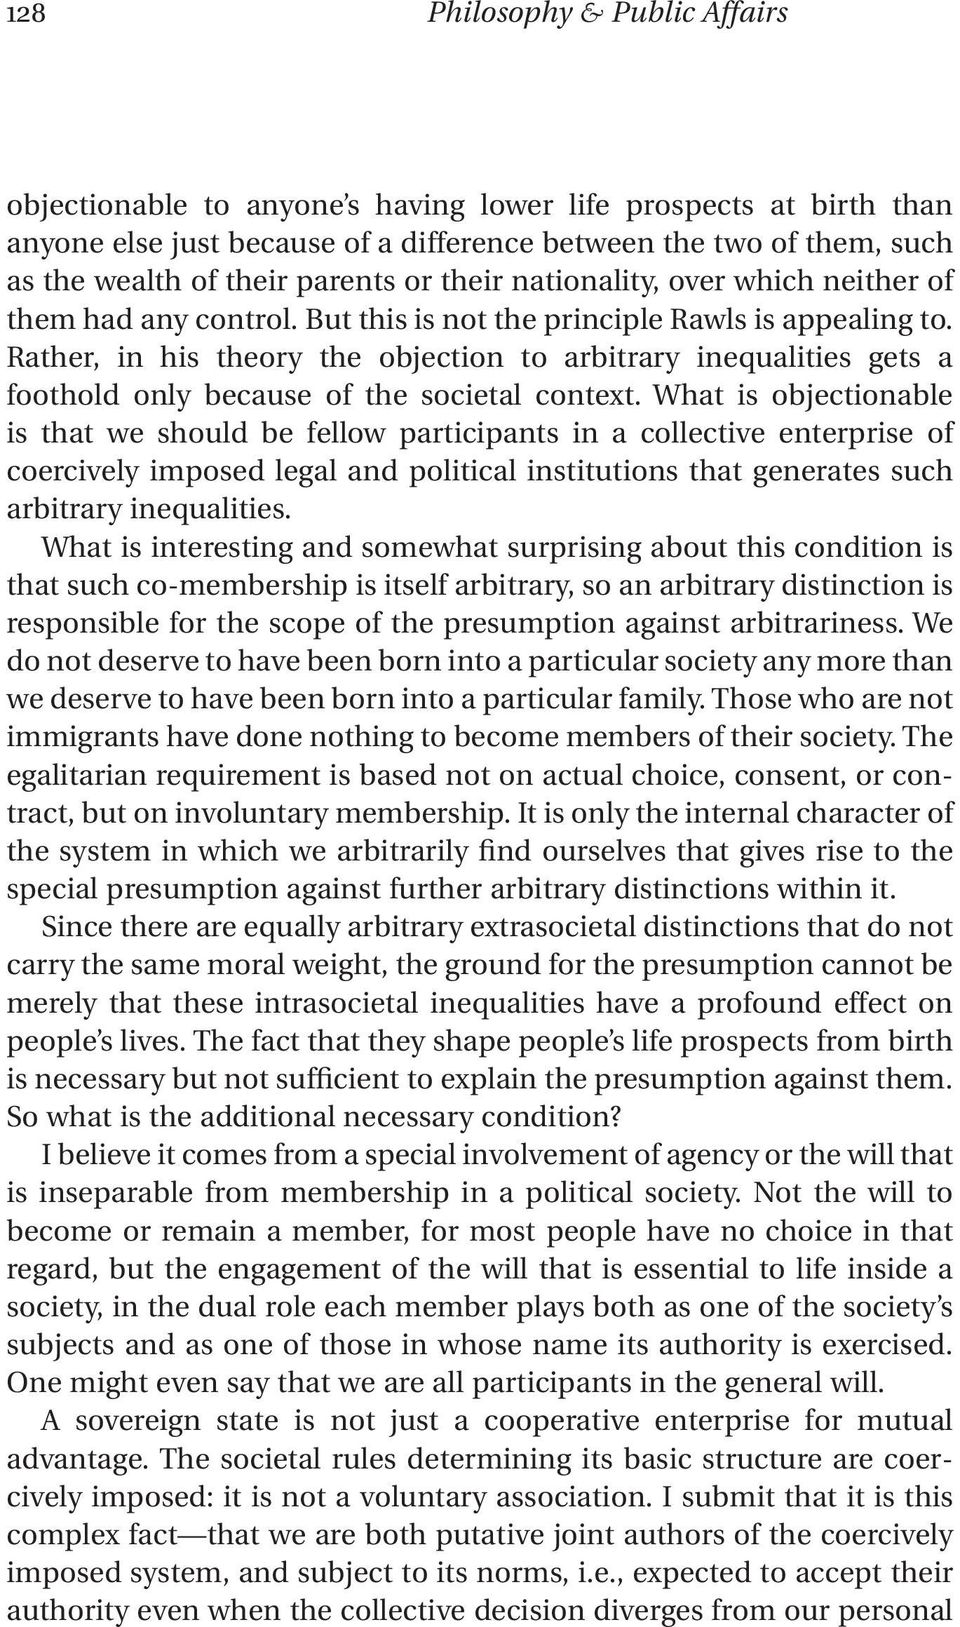 Rather, in his theory the objection to arbitrary inequalities gets a foothold only because of the societal context.